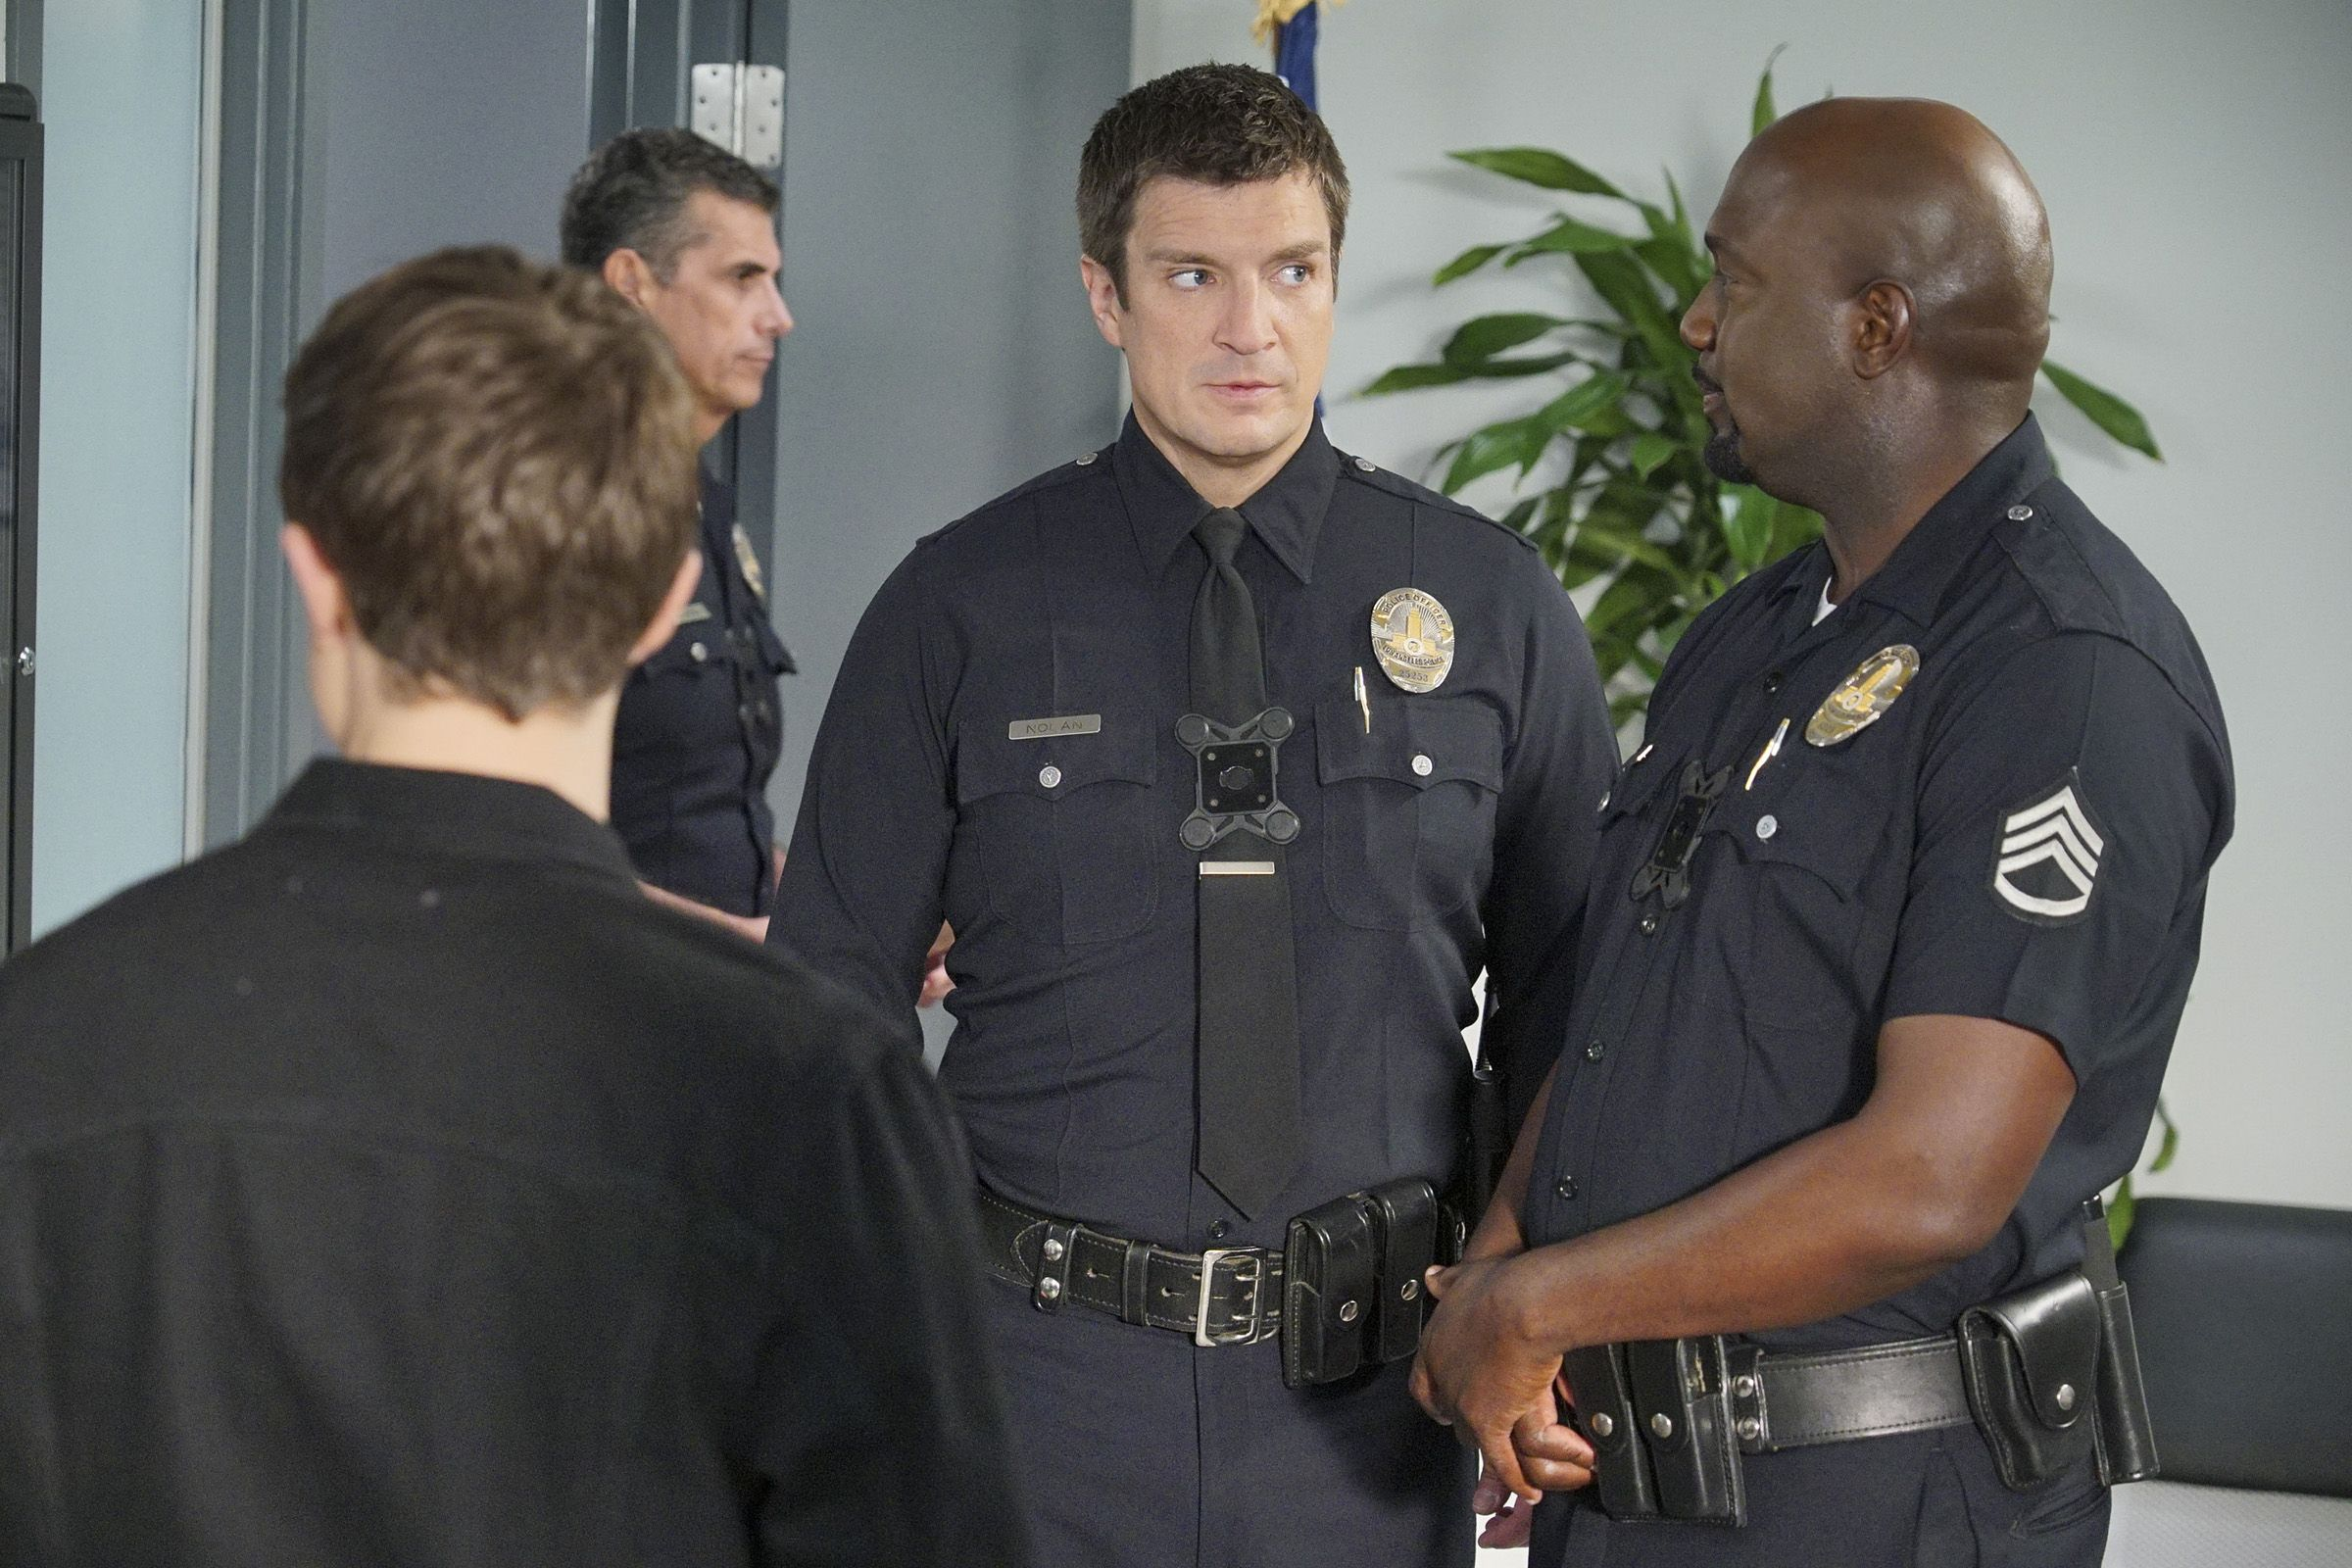 The Rookie Season 2 - Nathan Fillion's The Rookie Show Cast